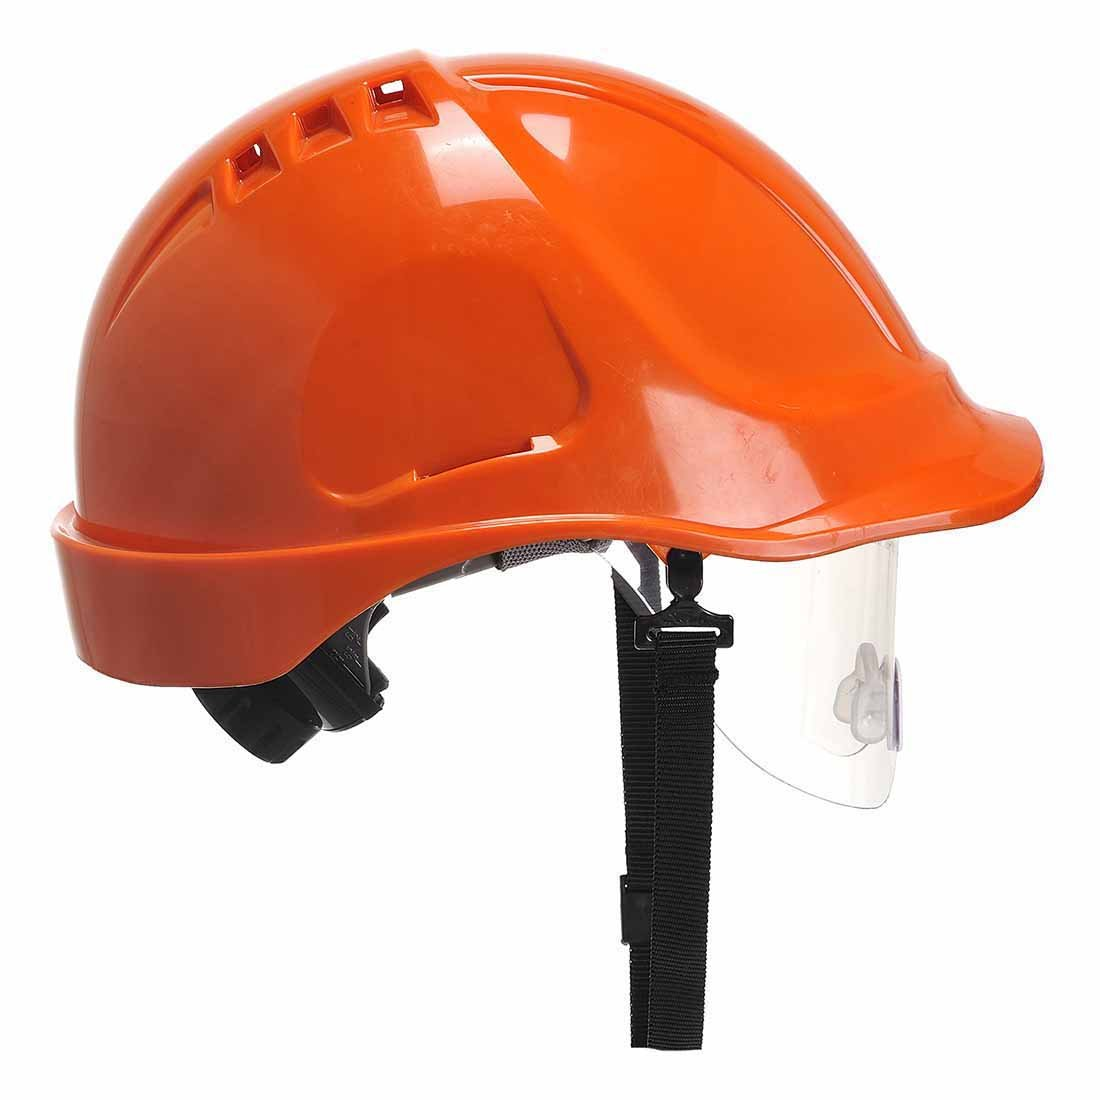 sUw Orange Site Safety Workwear Endurance Visor Helmet Hard Hat Adjustable